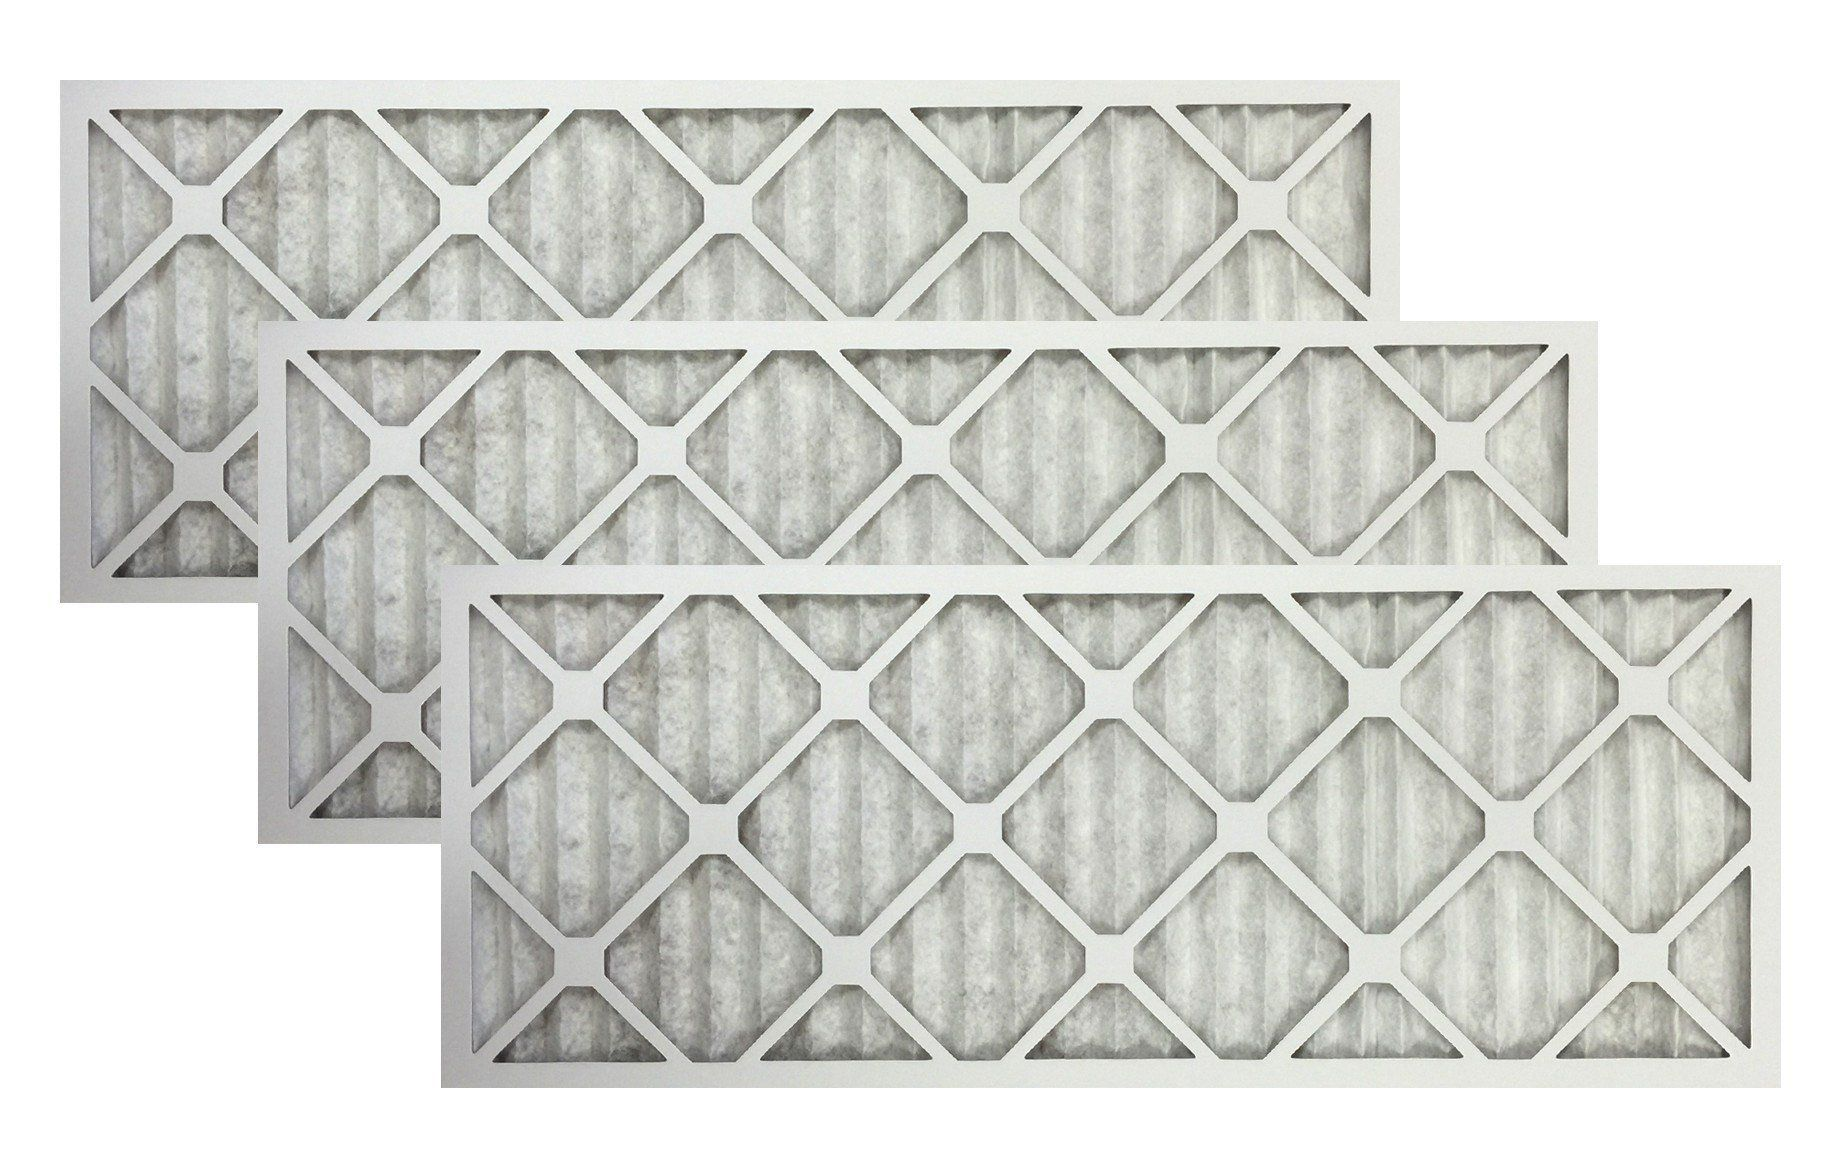 12x30x1 MERV11 Air Furnace Filter Furnace filters, Hvac